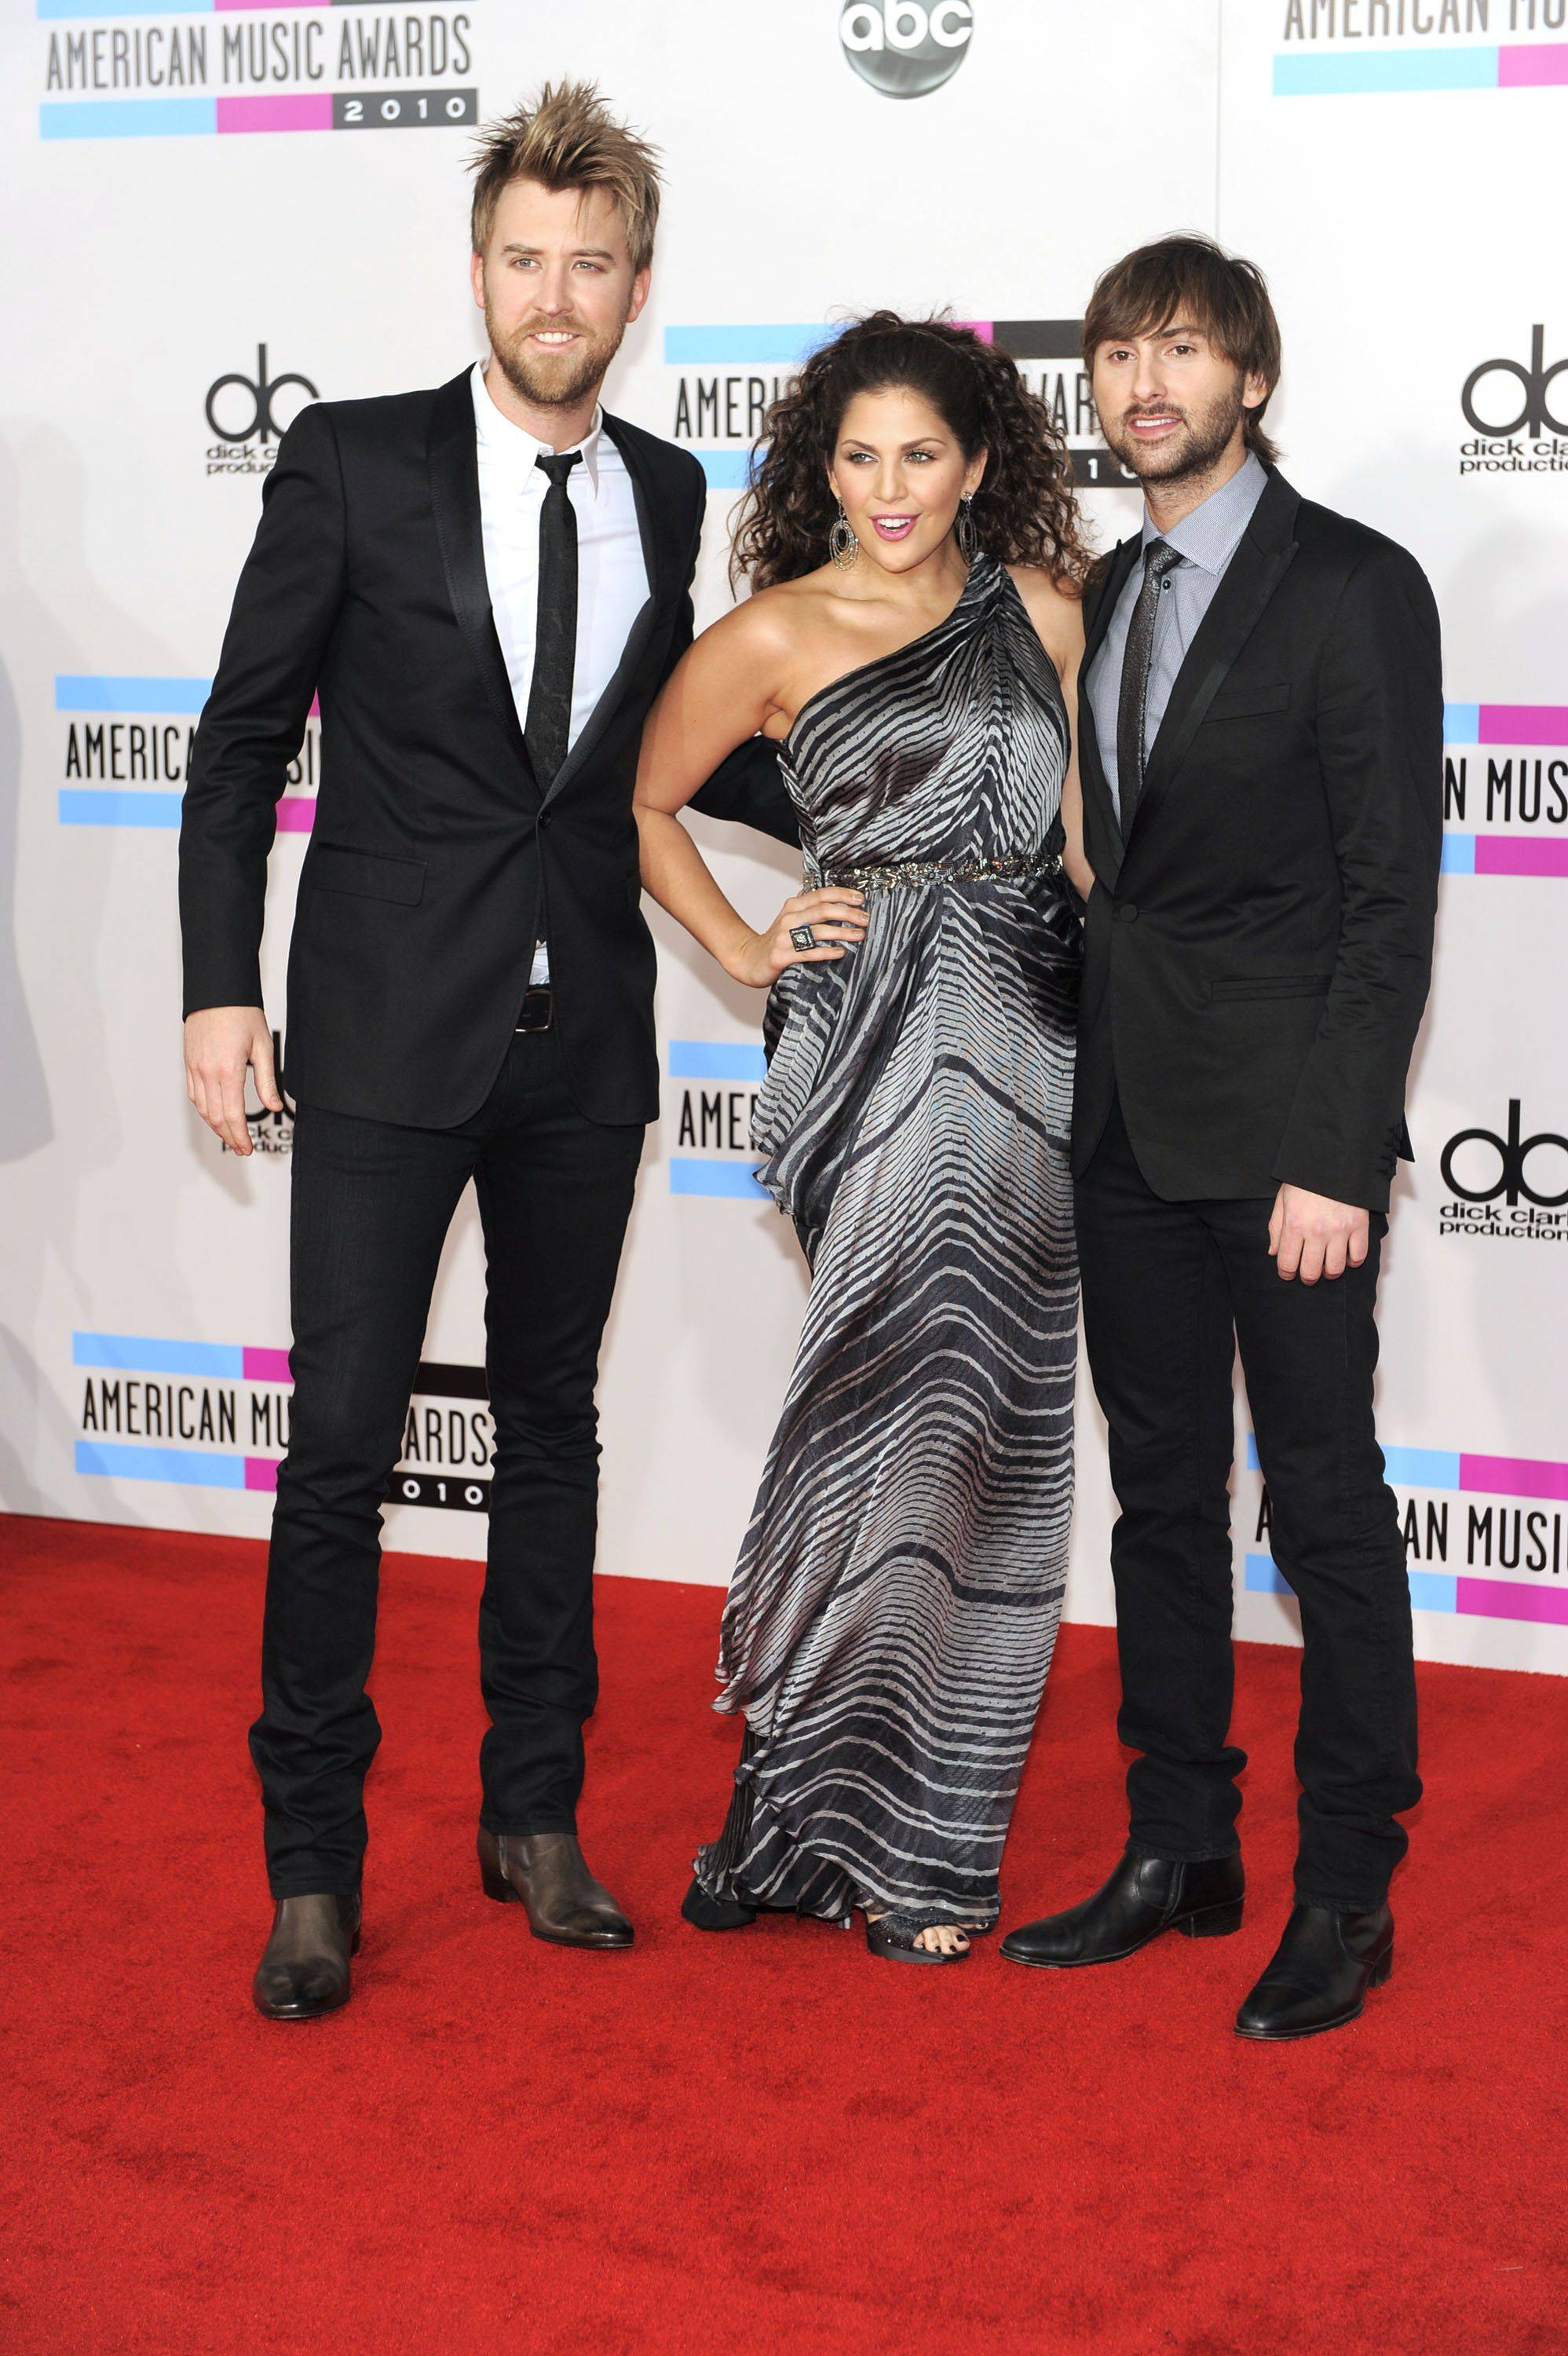 Lady Antebellum (from left, Charles Kelley, Hillary Scott and Dave Haywood) nominated for five awards walk the red carpet before the start of the show.